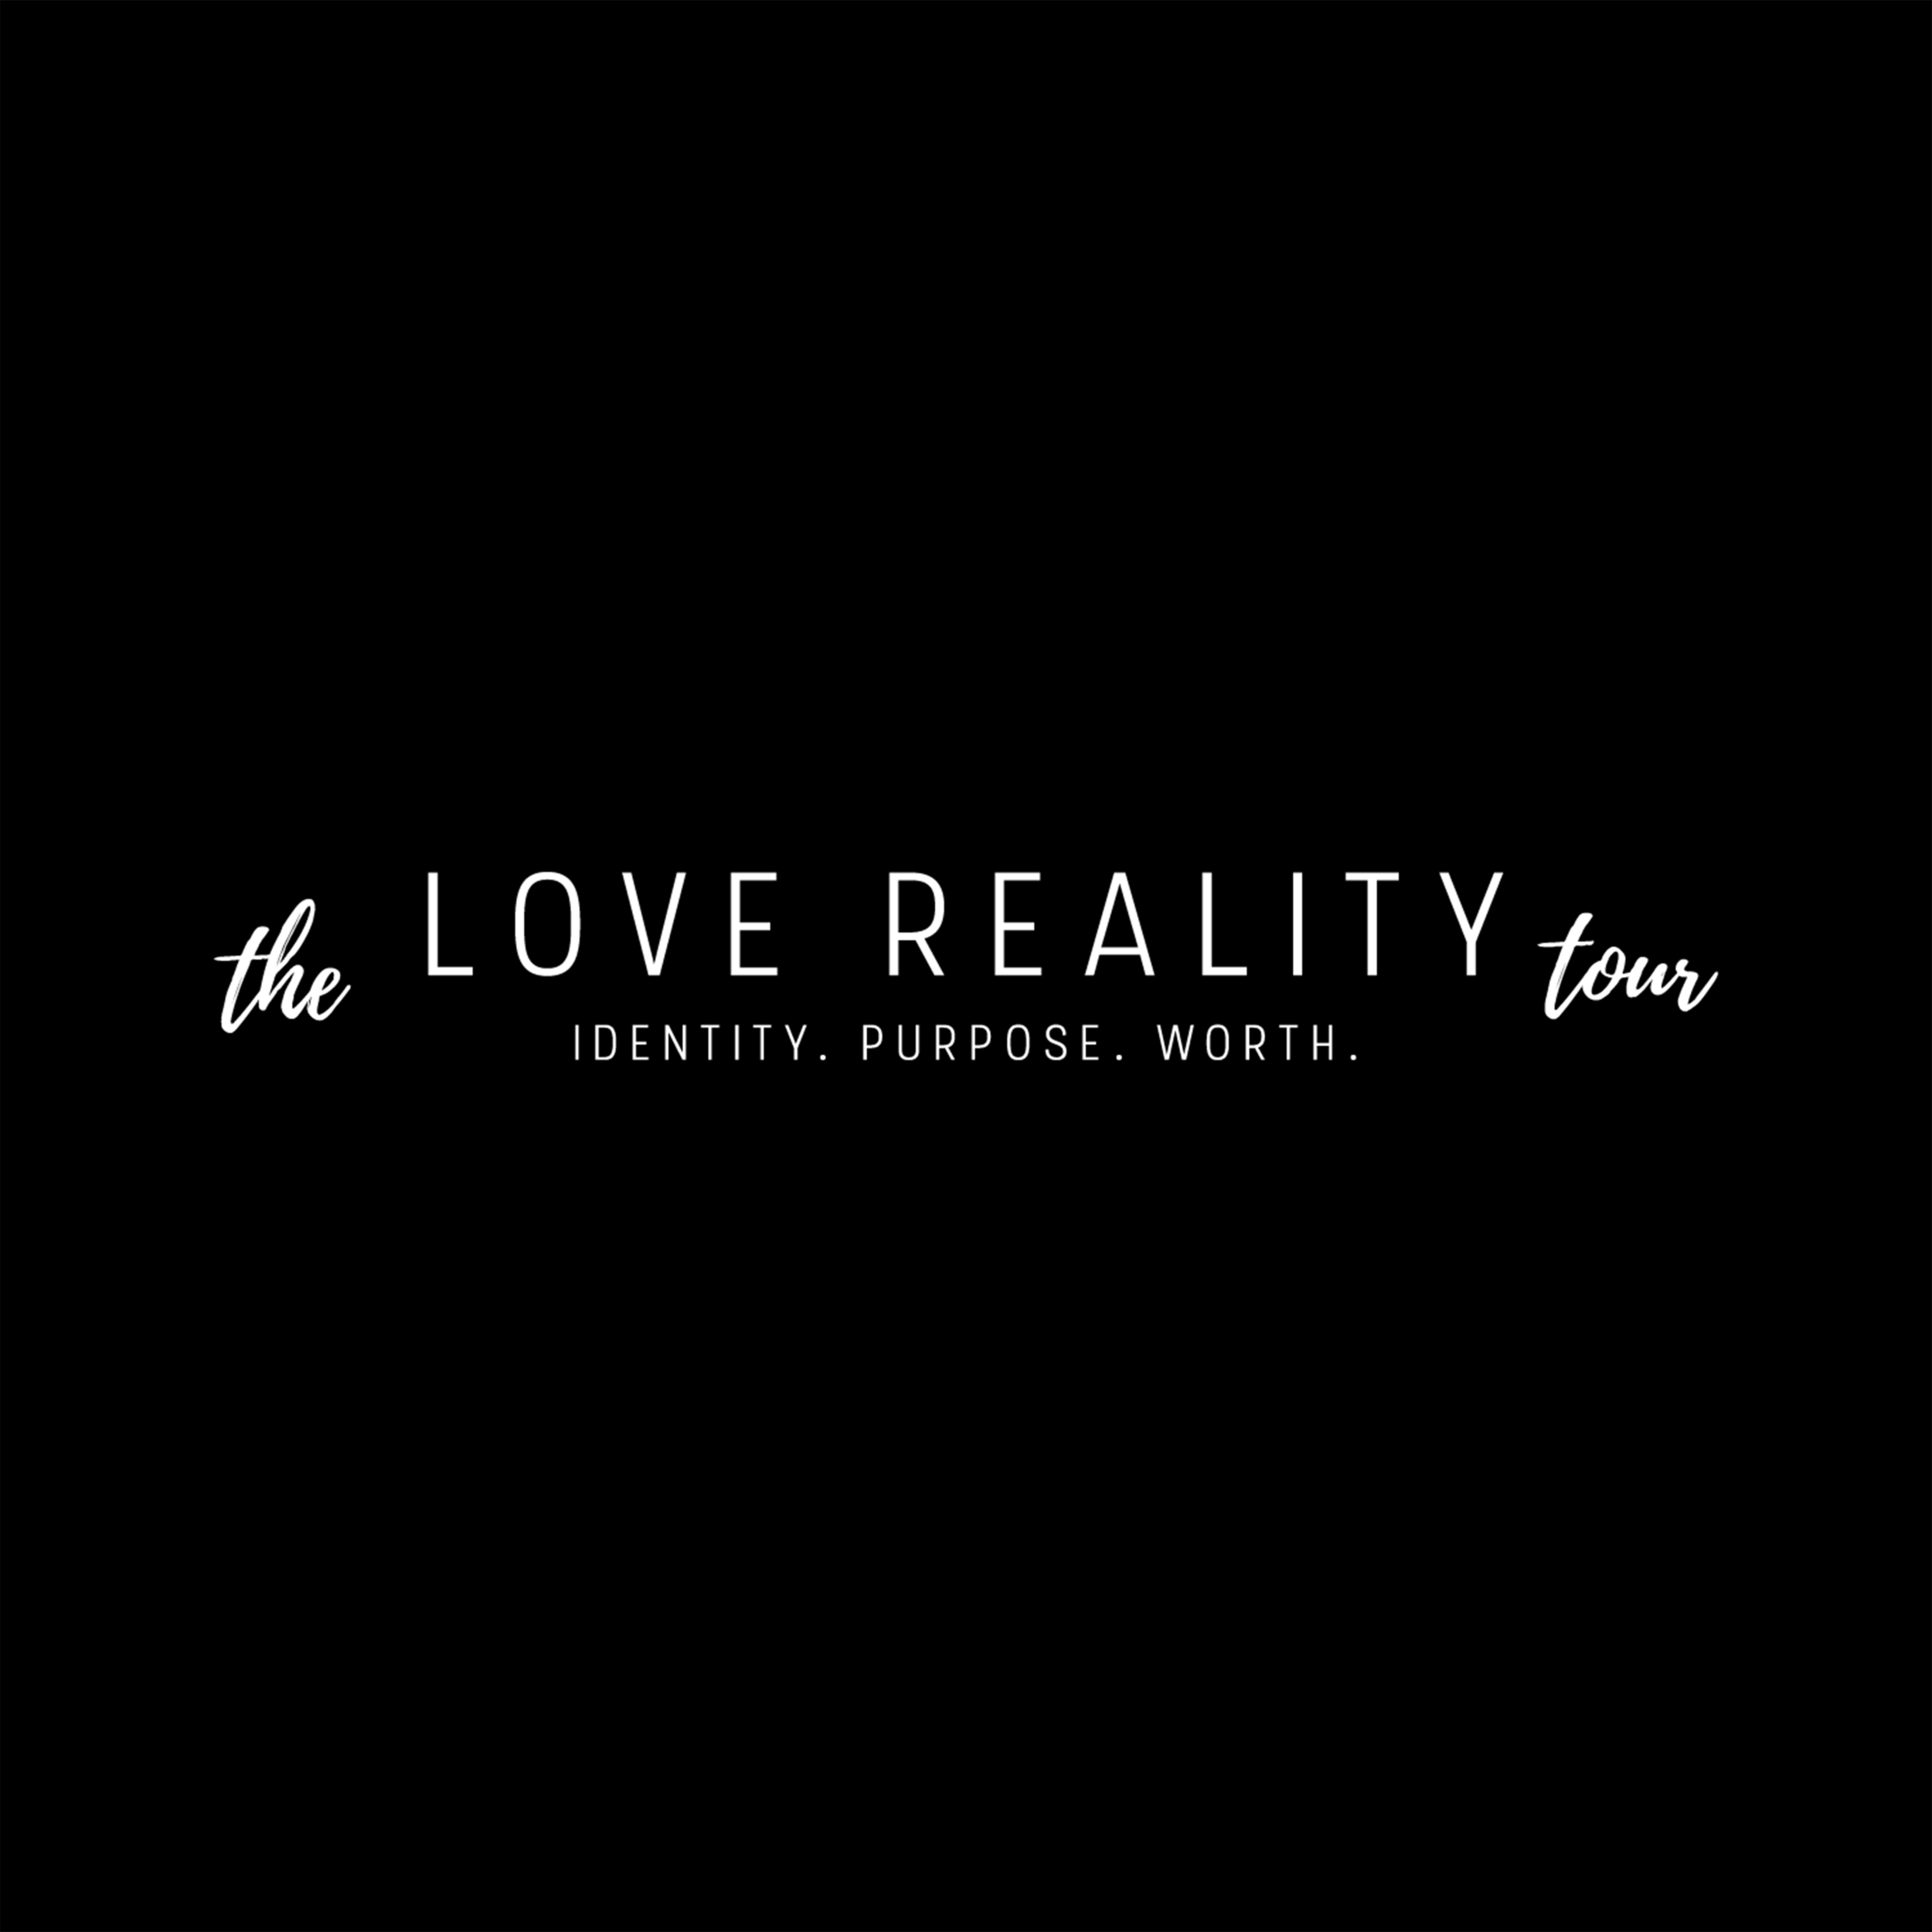 the-love-reality-tour-logo bk.png